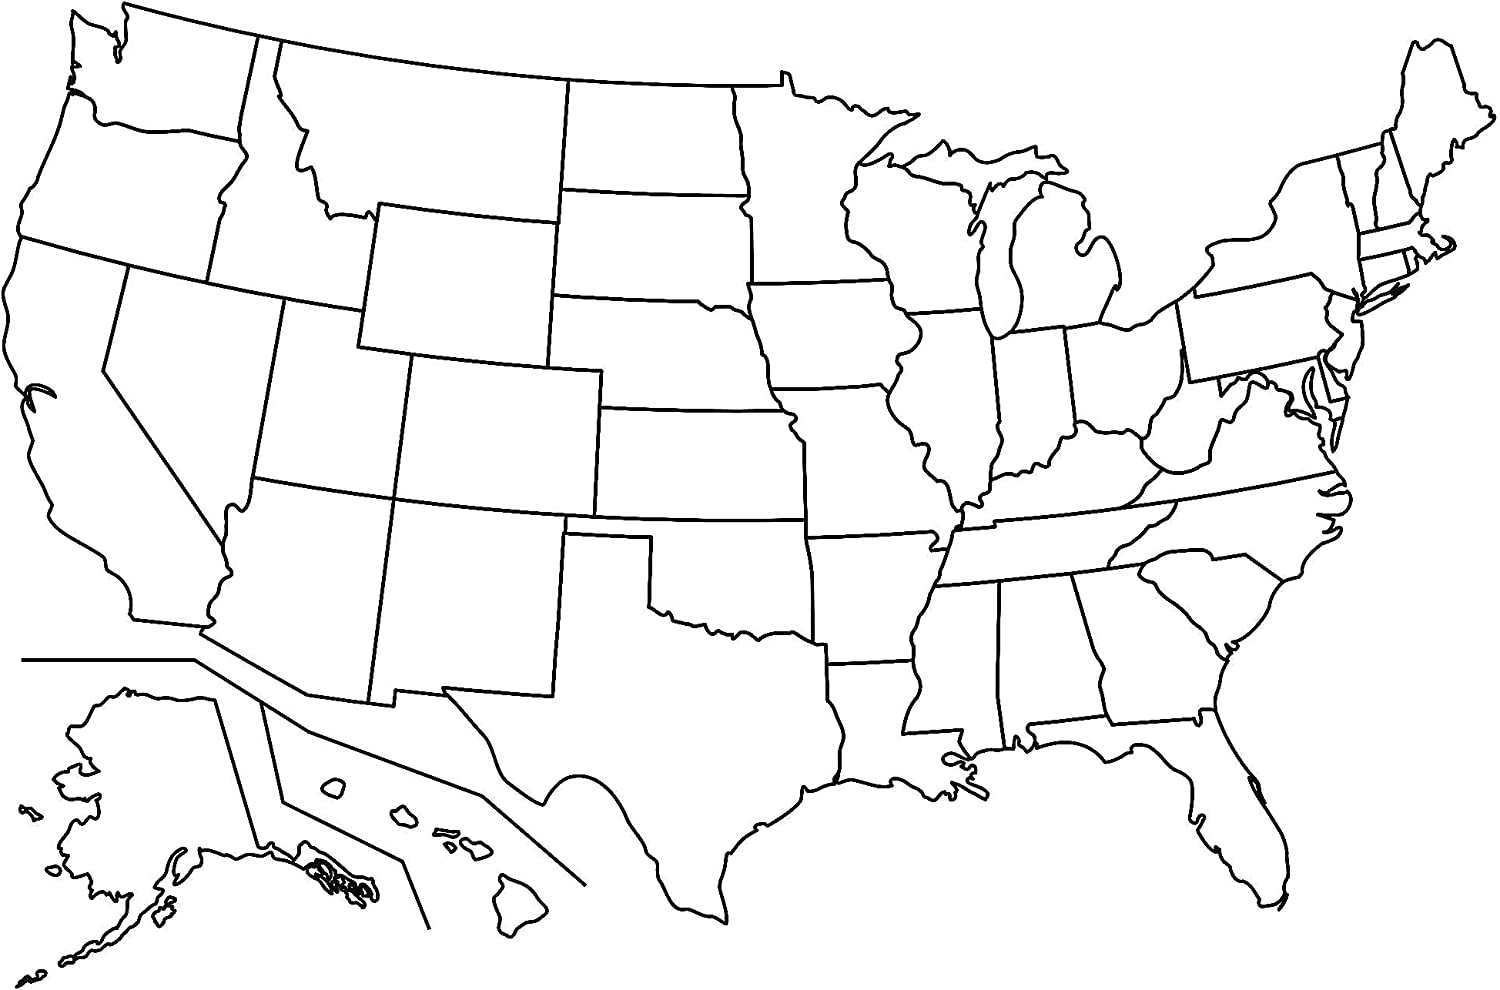 Black And White Map Of The United States Amazon.com: Home Comforts Map   Us Map No Labels Blank Simple of